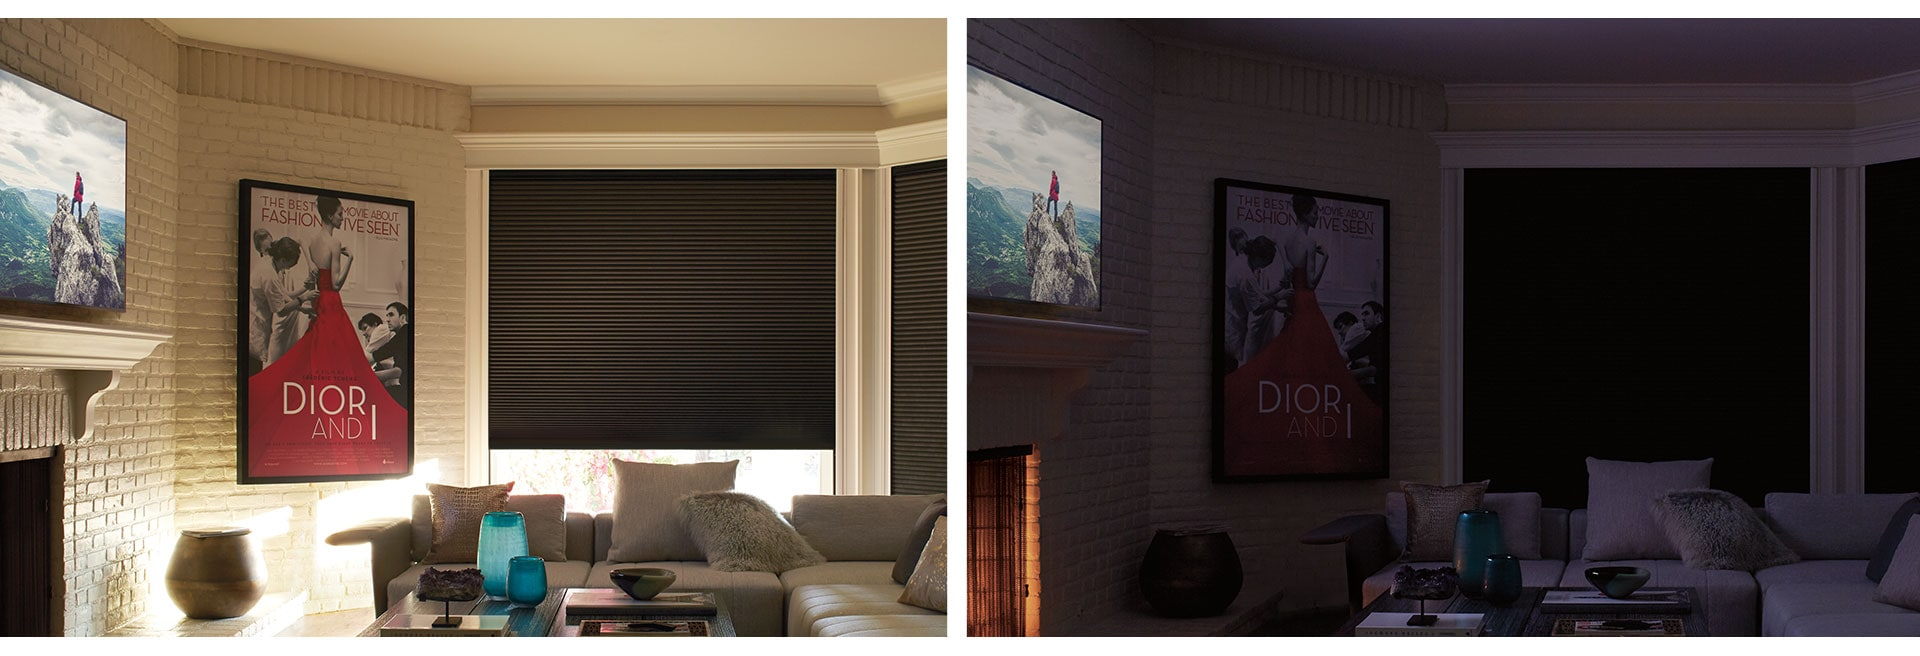 Duette® Honeycomb Shades (FIRST PHOTO) OPENED DUETTE SHADE ***BEFORE & AFTER PHOTO*** (SECOND PHOTO) CLOSED DUETTE SHADE WITH COMPLETE DARKNESS